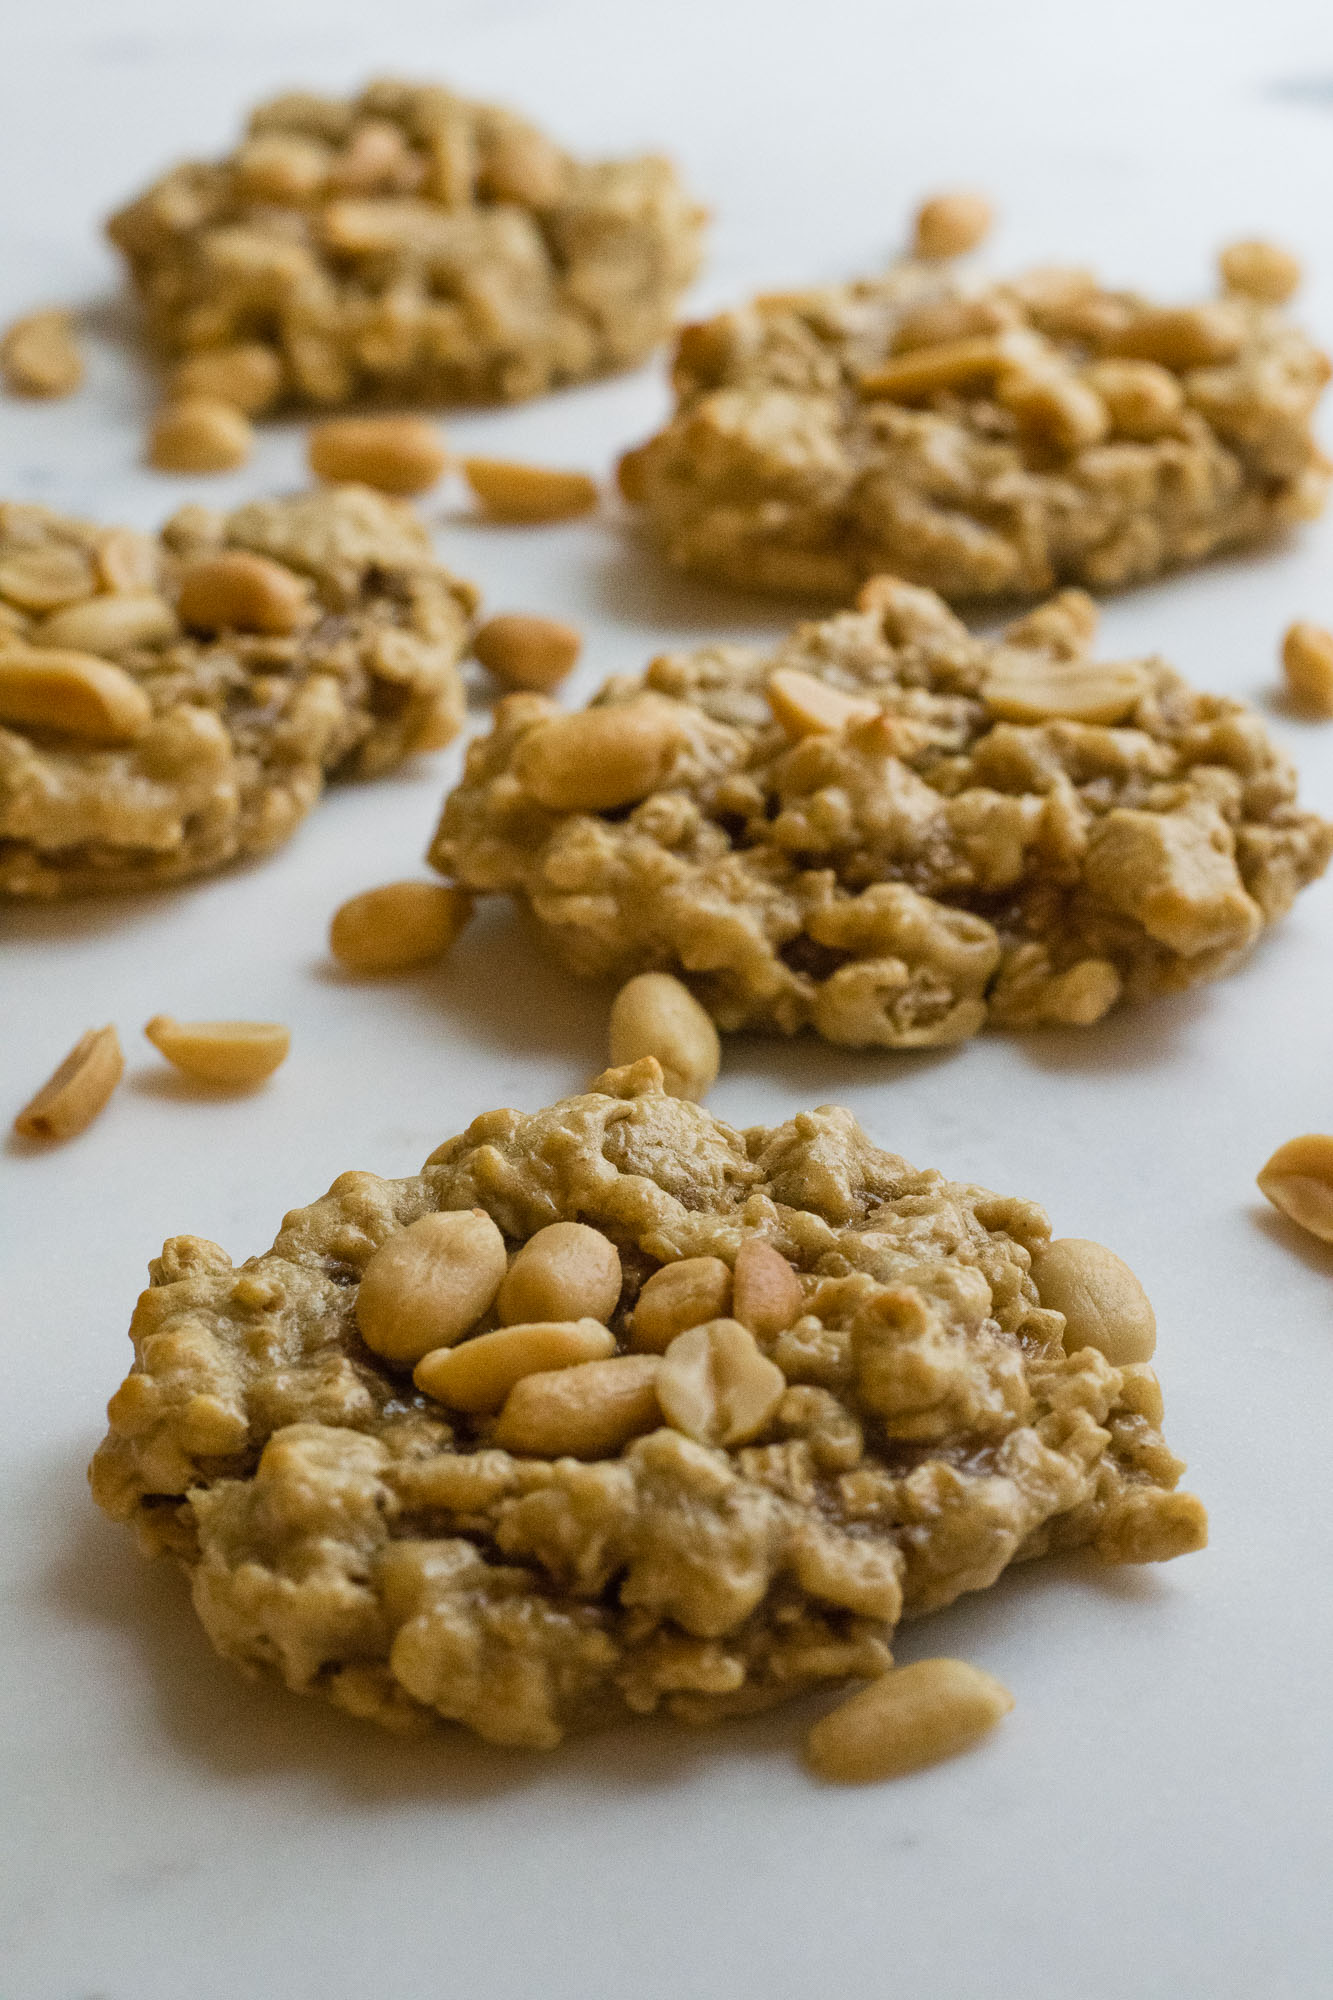 Healthy Peanut Butter Protein Cookies | The Leaner Approach